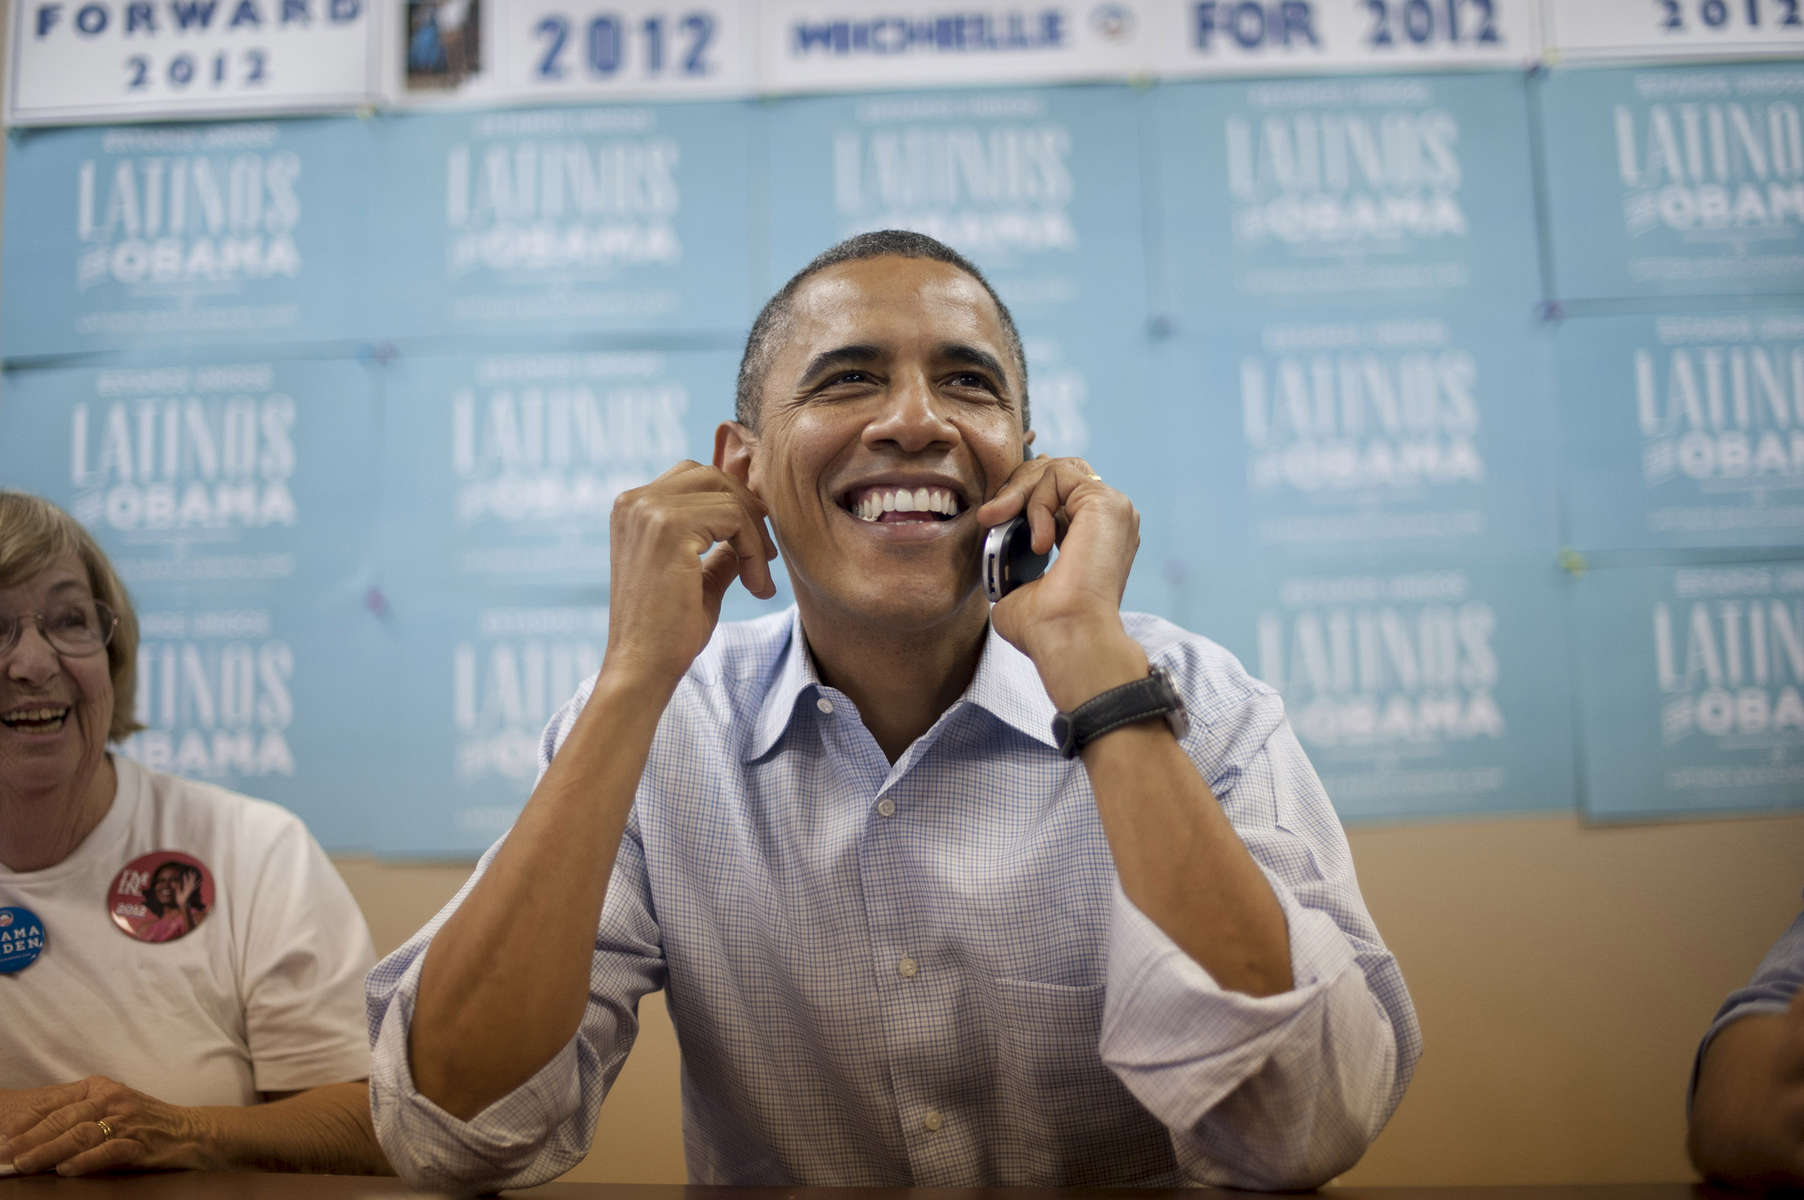 October 1, 2012 - Henderson, NV: President Barack Obama grins as he calls potential supporters from a campaign field office in Henderson, NV. (Scout Tufankjian for Obama for America/Polaris)